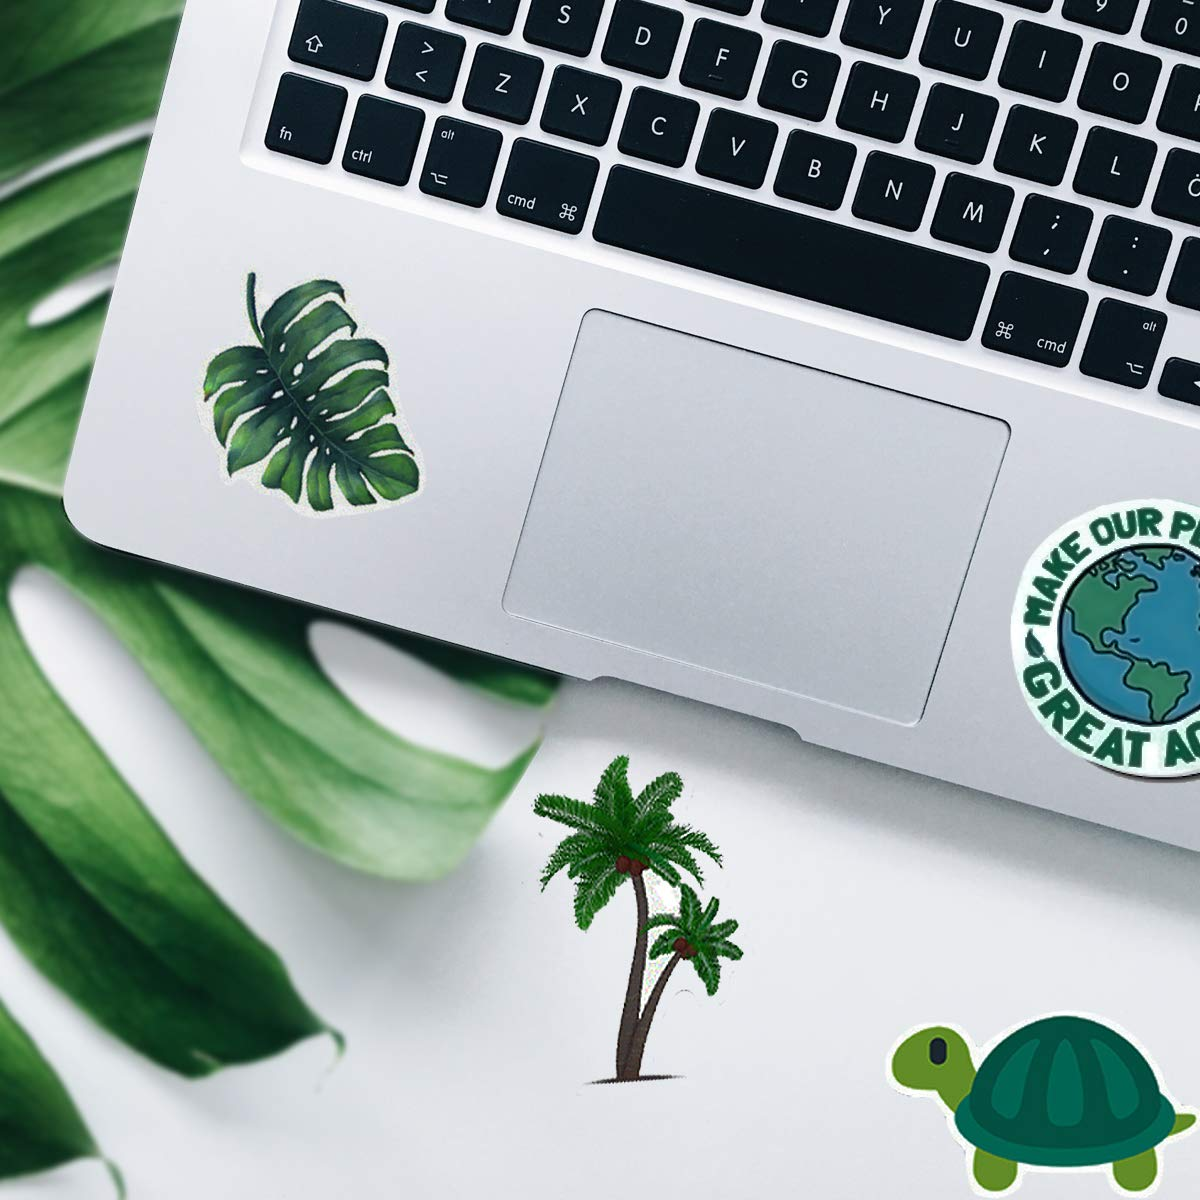 Trendy VSCO Vinyl Stickers for Laptop Water Bottles (50-Pack) Cute Aesthetic Waterproof Stickers for Hydro Flask, Suitable for Girls, Kids, Teens, Adults (Green Series)